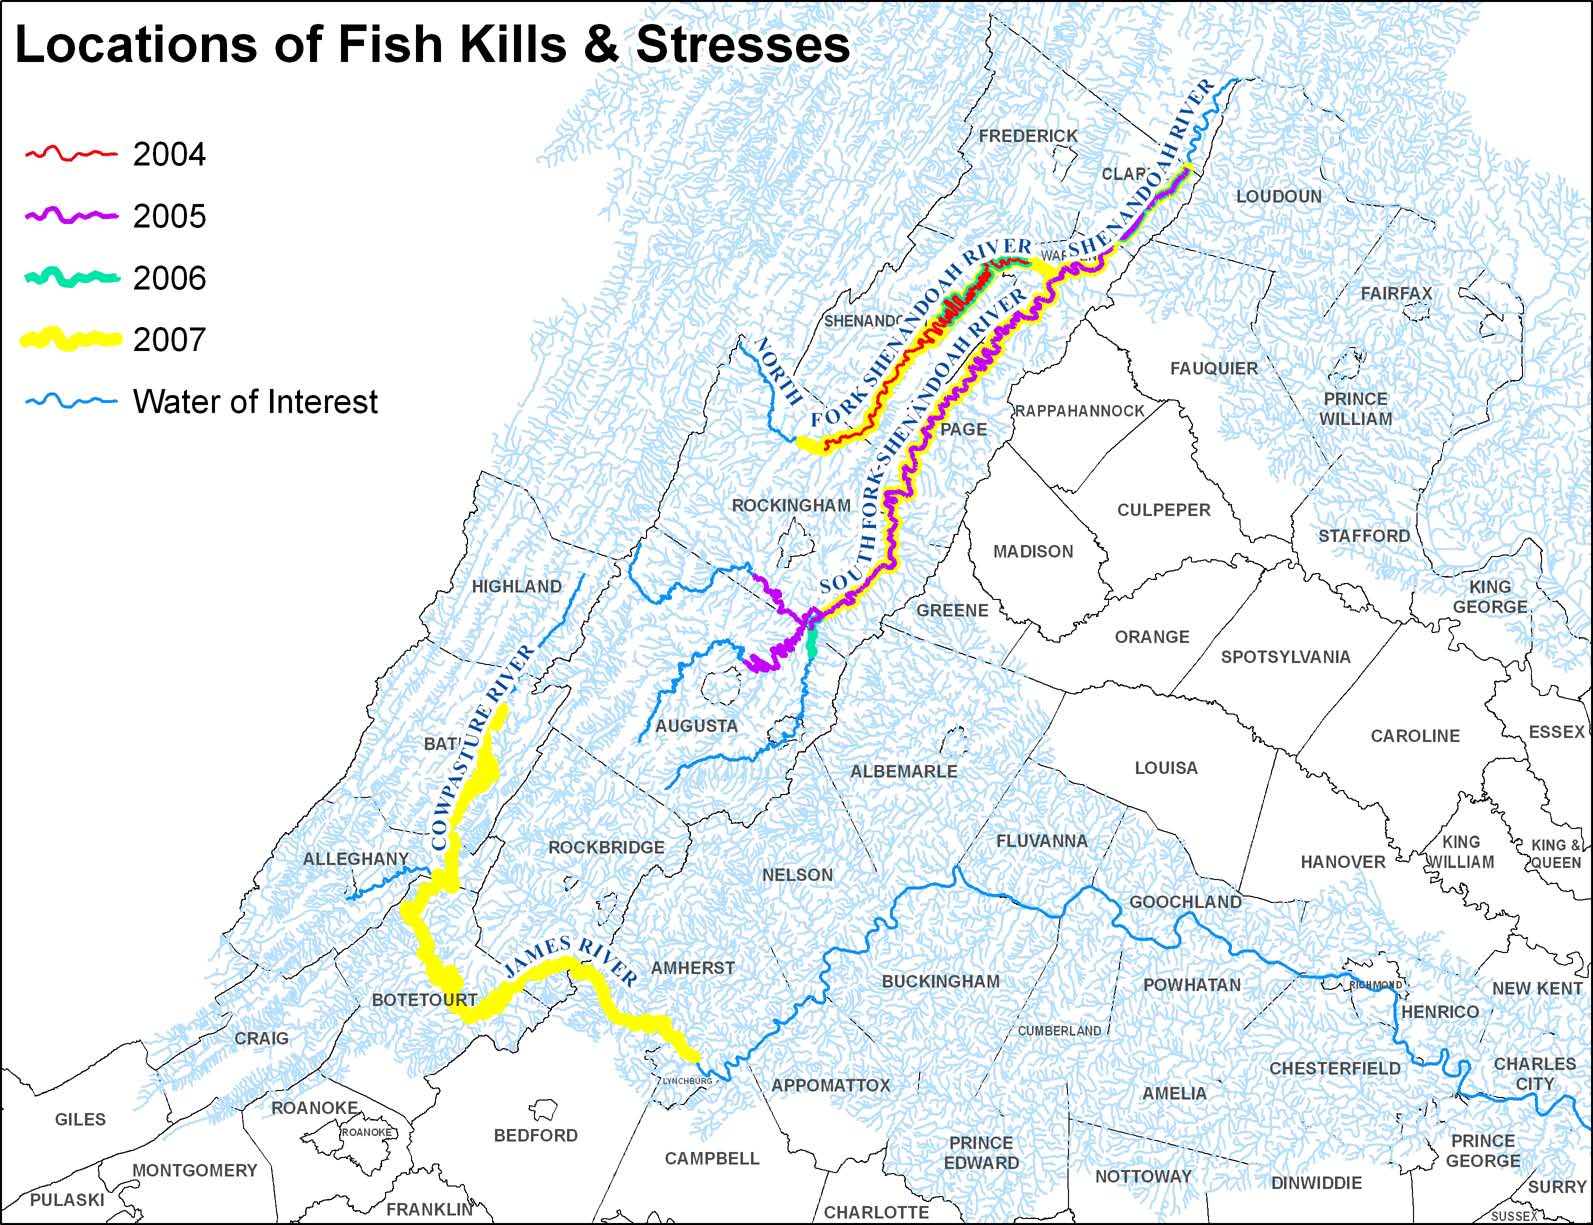 Rivers affected by fish kills in Virginia. (Virginia Department of Game and Inland Fisheries)